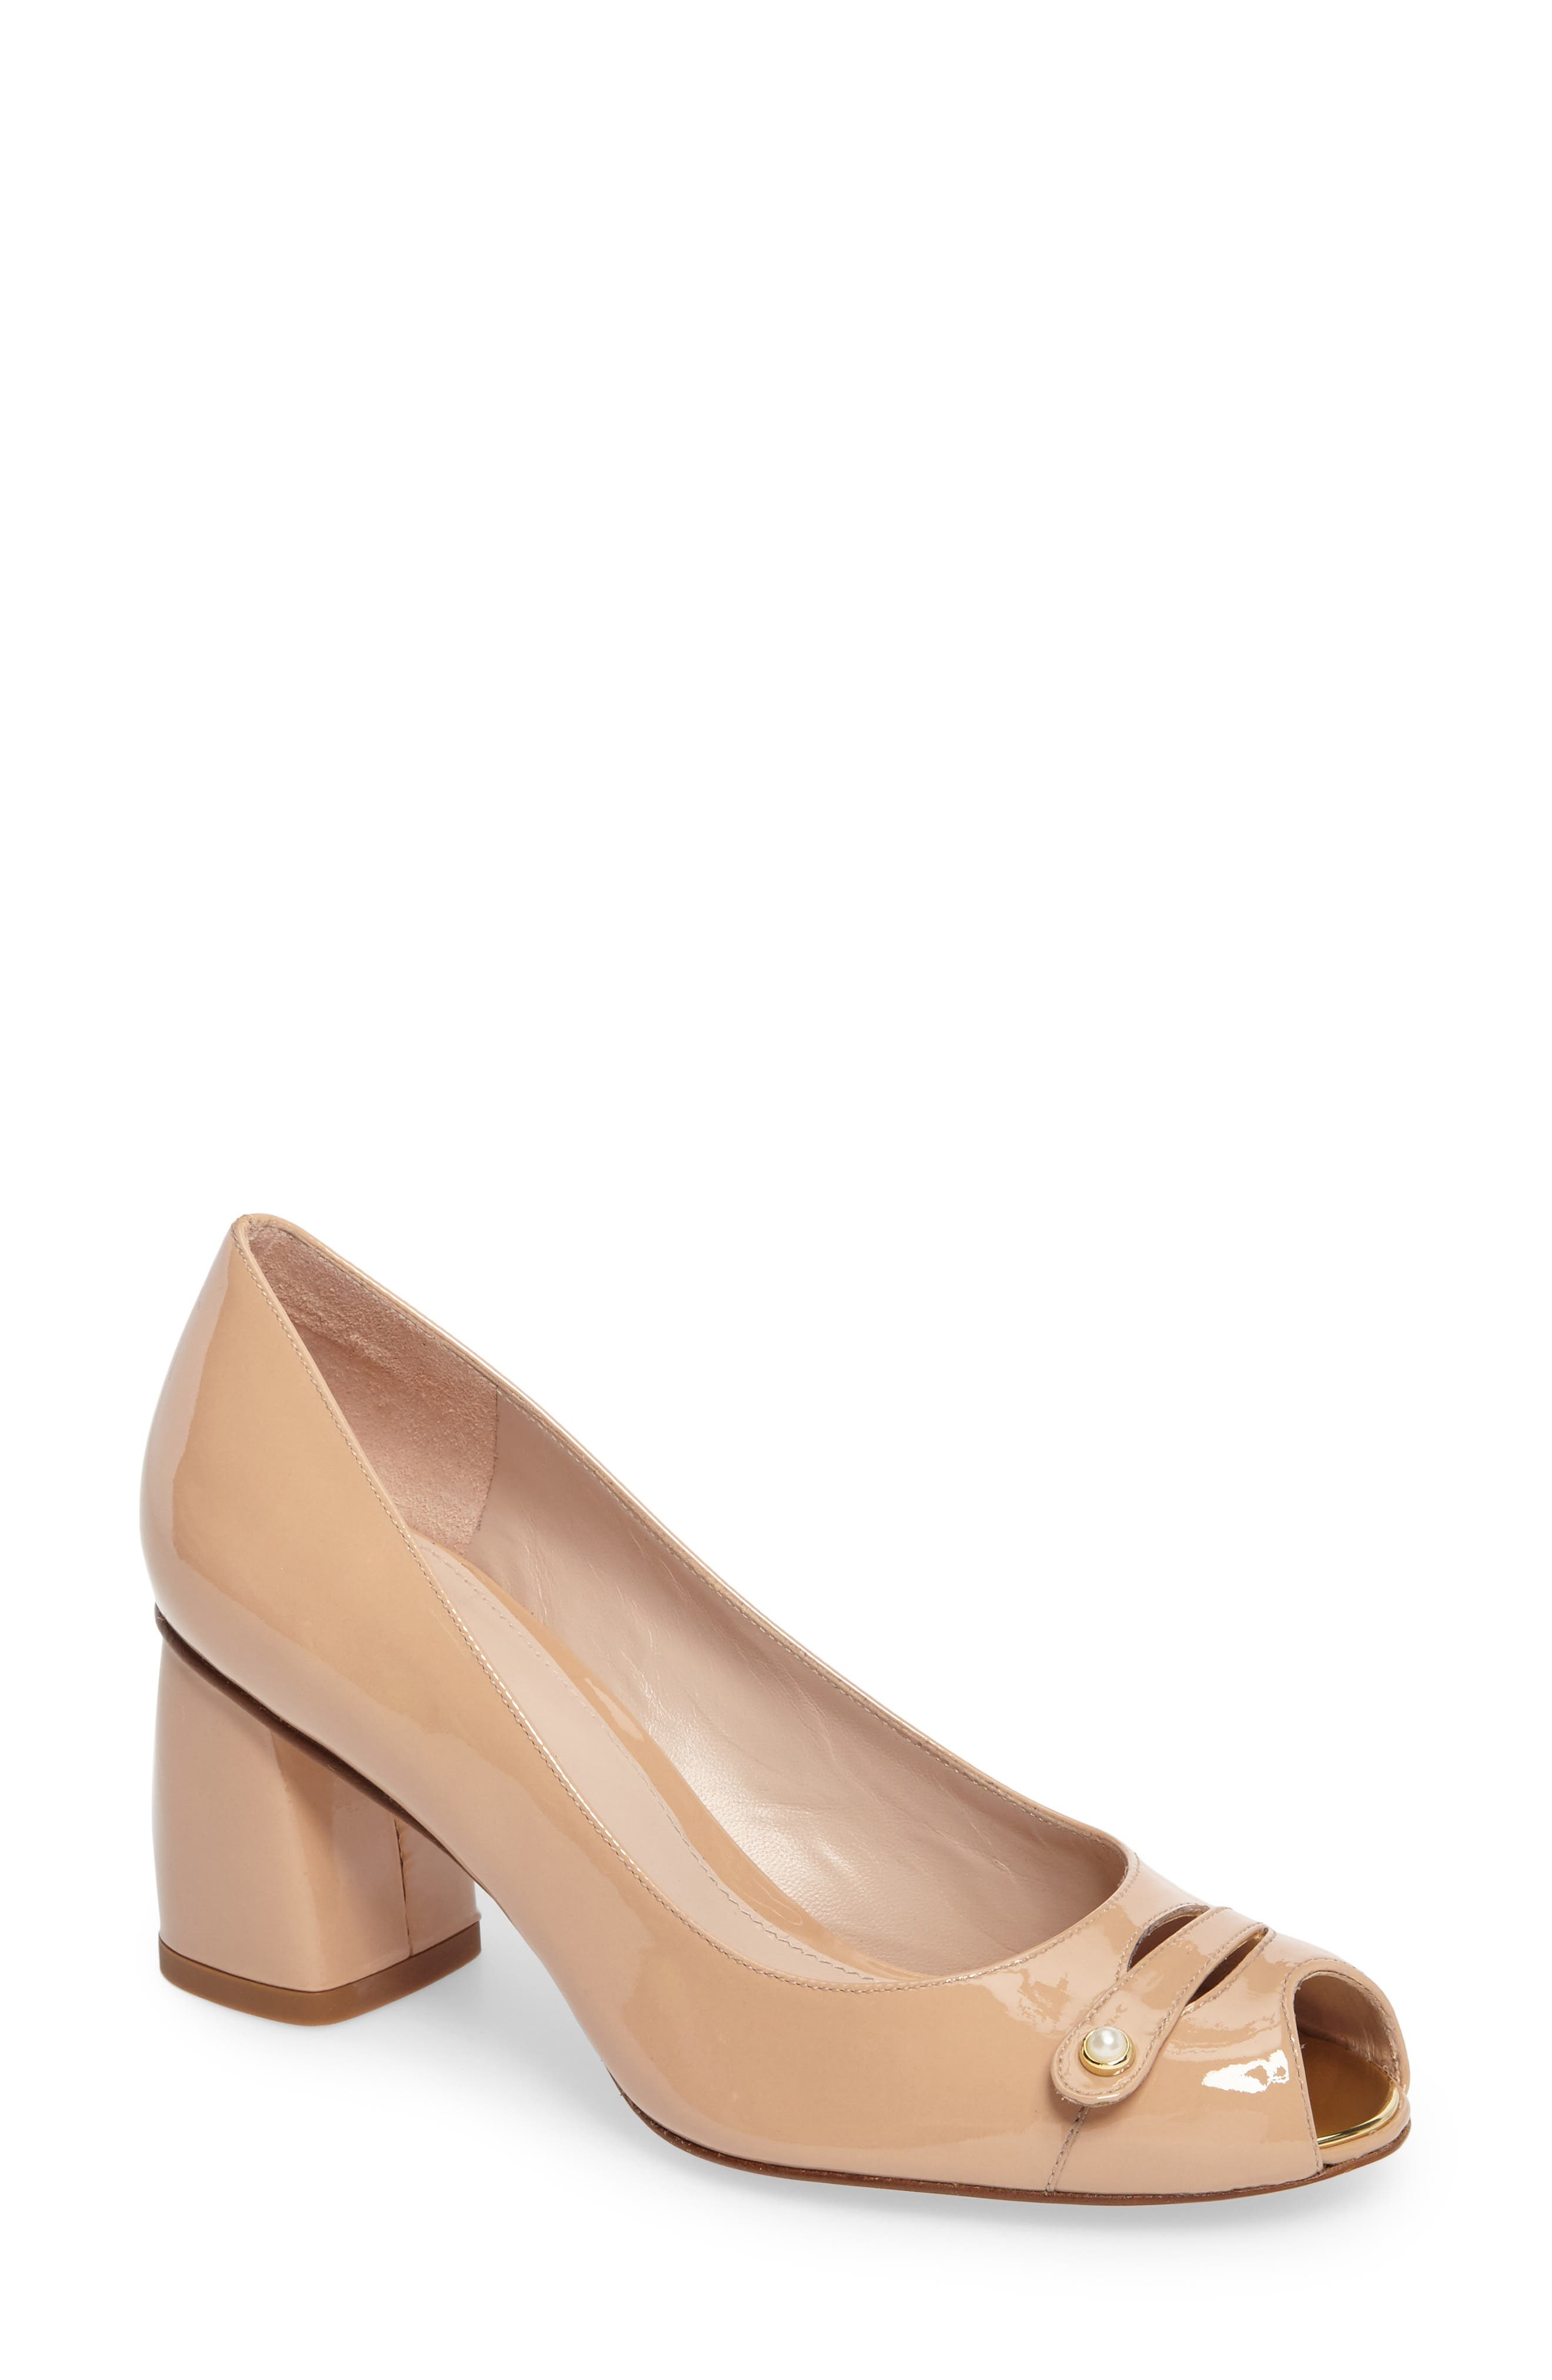 Main Image - Stuart Weitzman Tabeta Open Toe Pump (Women)